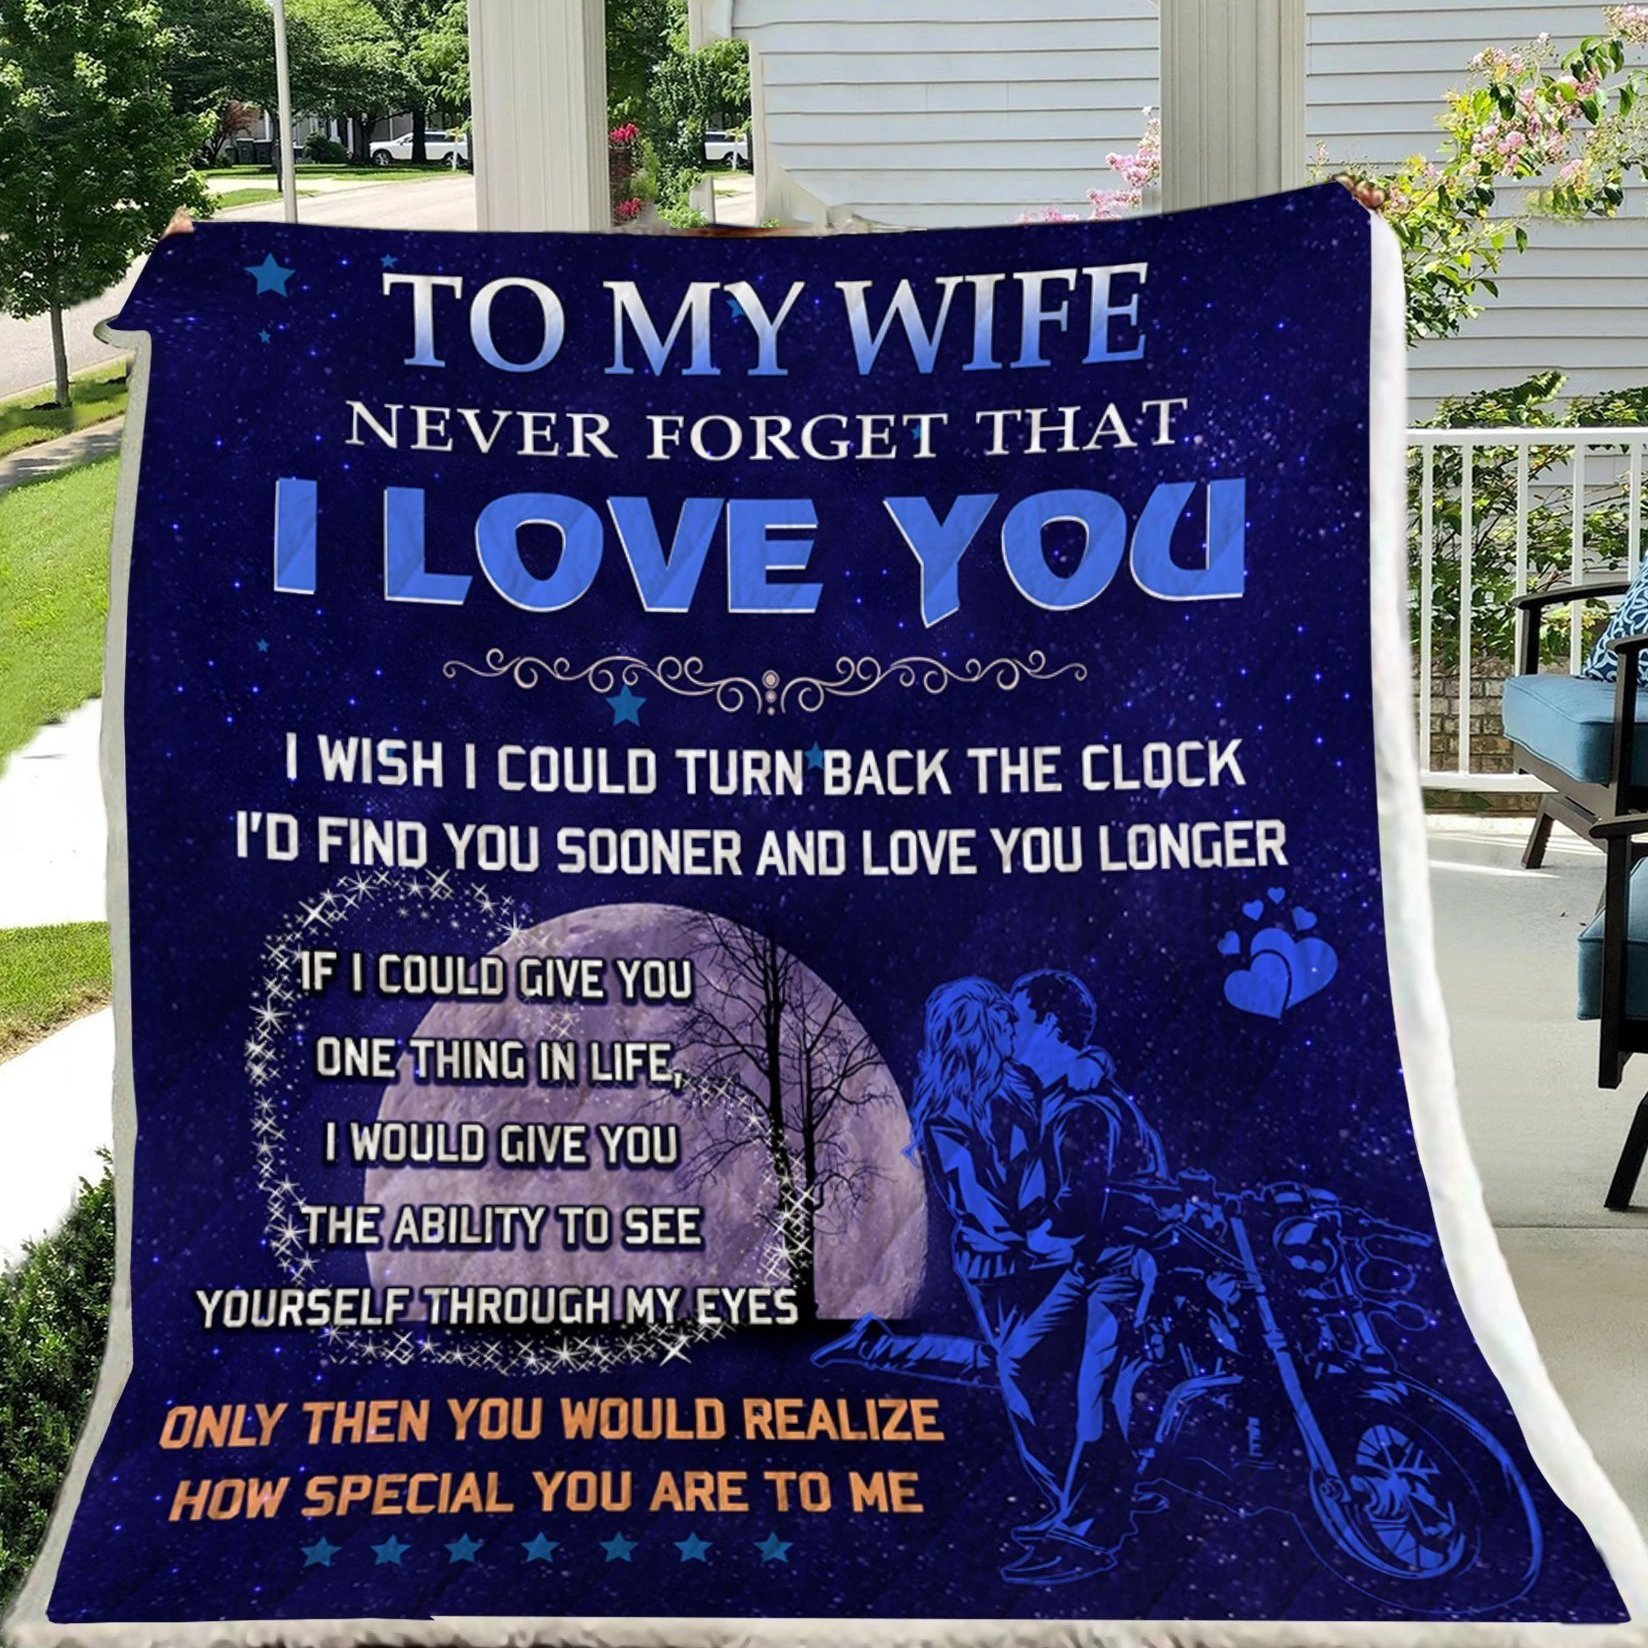 G- Biker blanket - To my wife - I love you, gift ideas for women, best gift for wife 2020, birthday gift ideas for wife, best gift for wife on her birthday, unique gift ideas for wife, thoughtful valentine gifts for wife, unique gifts for wife